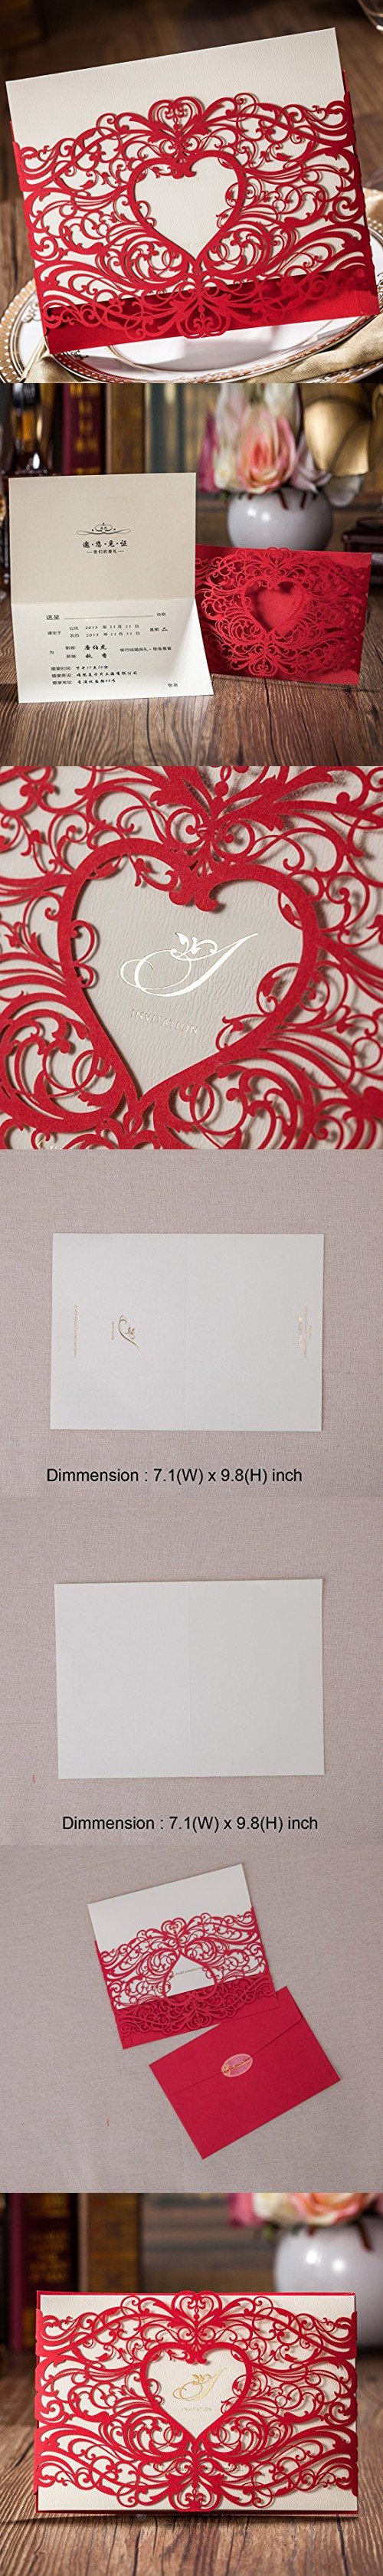 WISHMADE Laser Cut Invitations Cards Sets Red 50 Pieces for Wedding ...